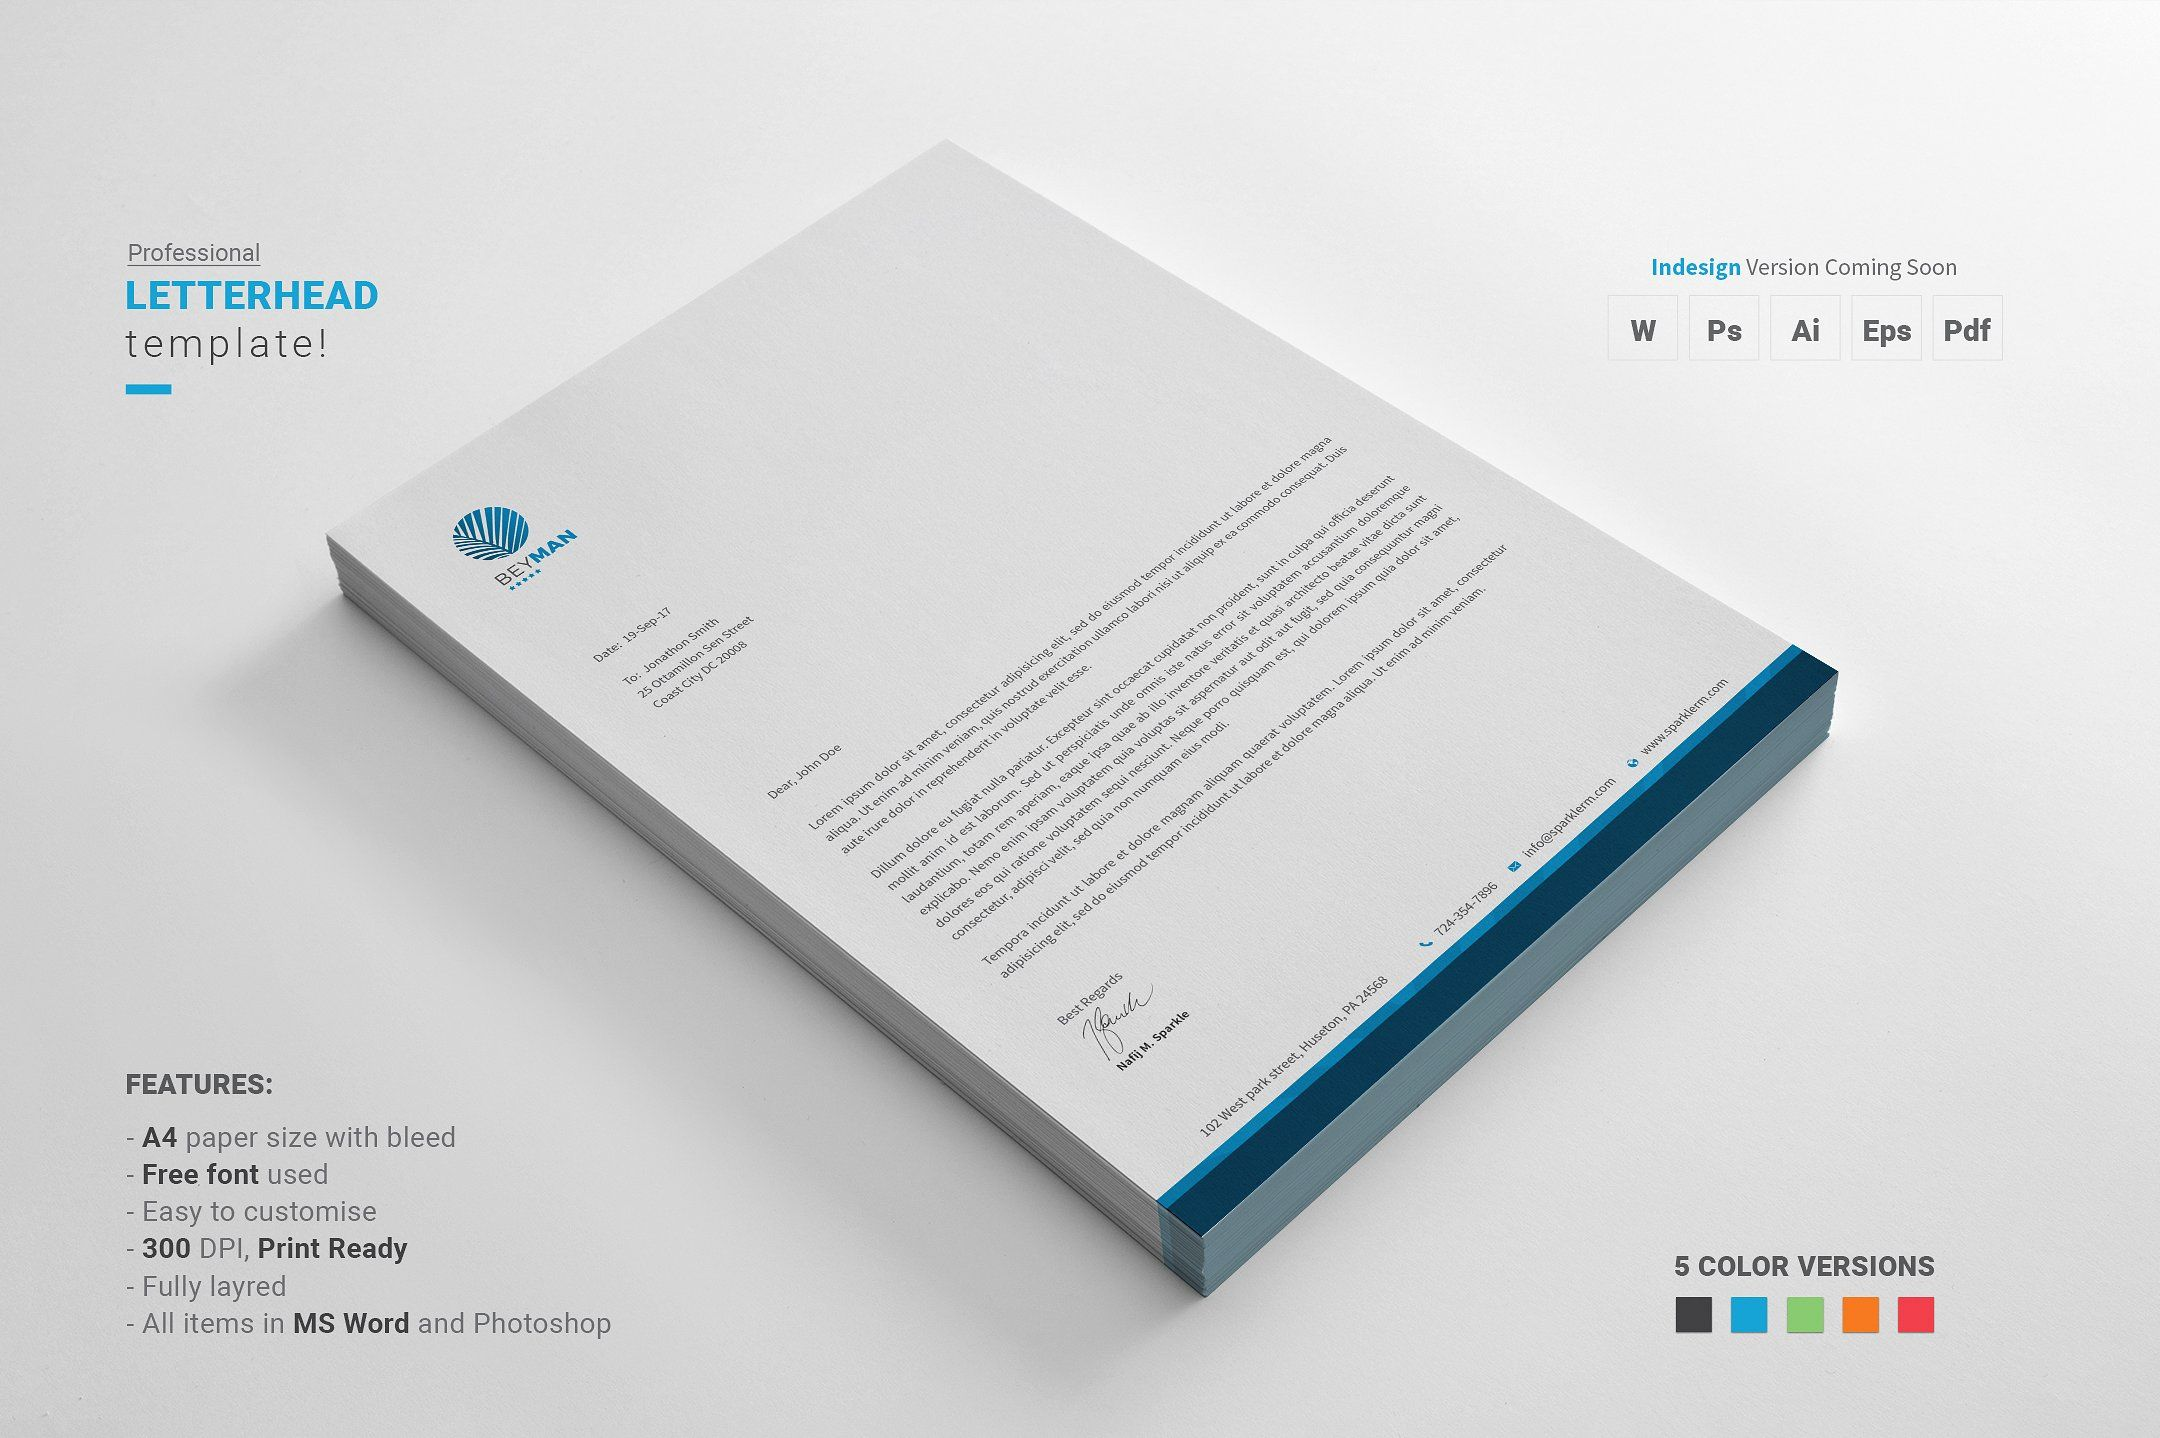 letterhead akawordmicrosoftprofessionally resume objective for application template free maker no credit card